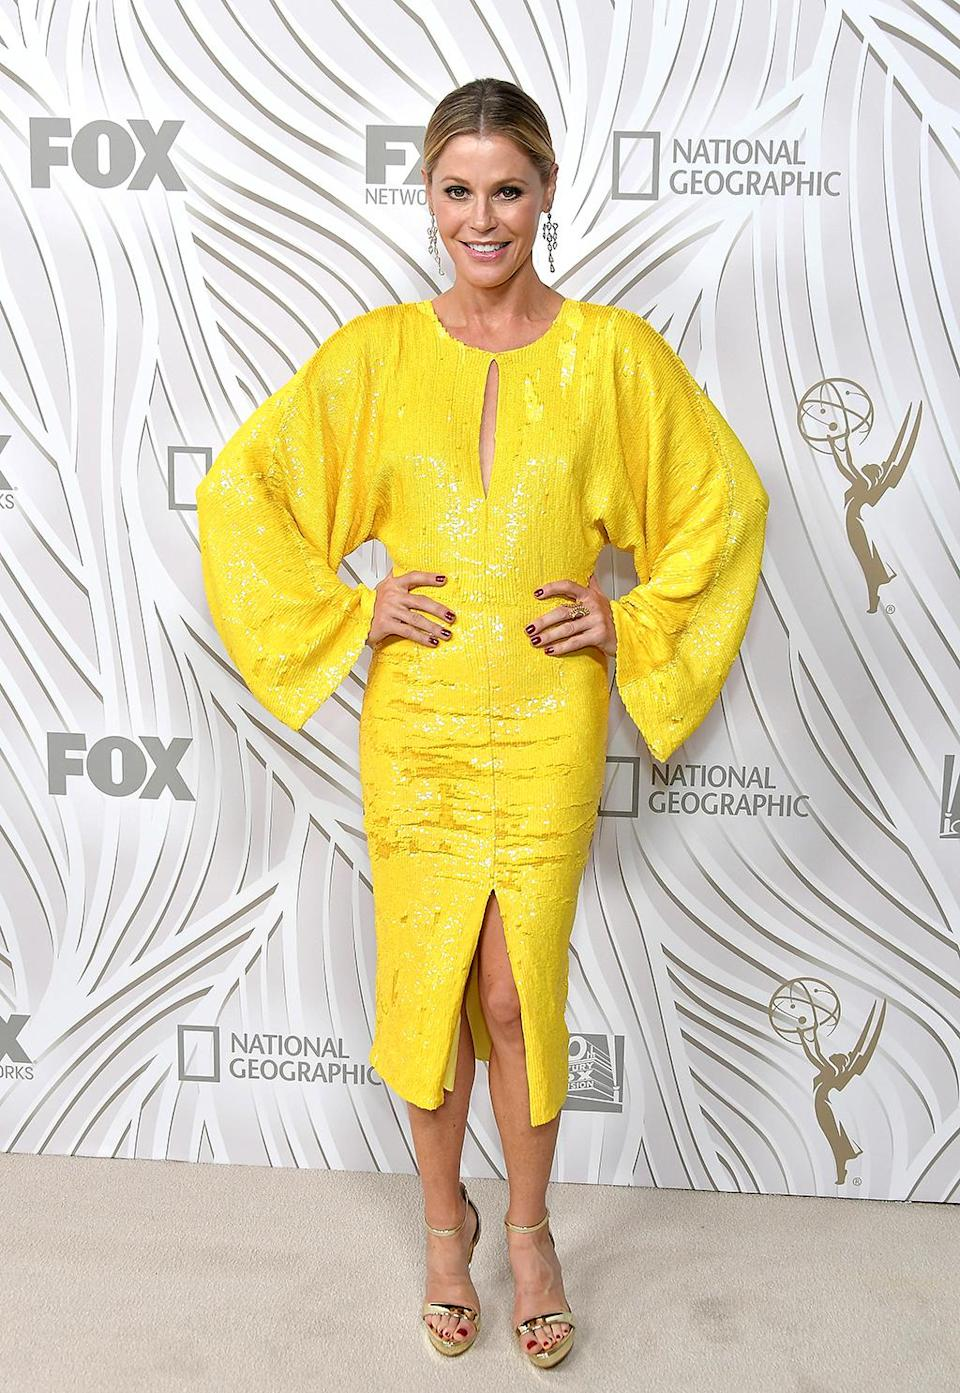 <p>Julie Bowen at the after-party for the Fox Broadcasting Co., Twentieth Century Fox Television, FX, and <em>National Geographic</em> at Vibiana. (Photo: Neilson Barnard/Getty Images) </p>